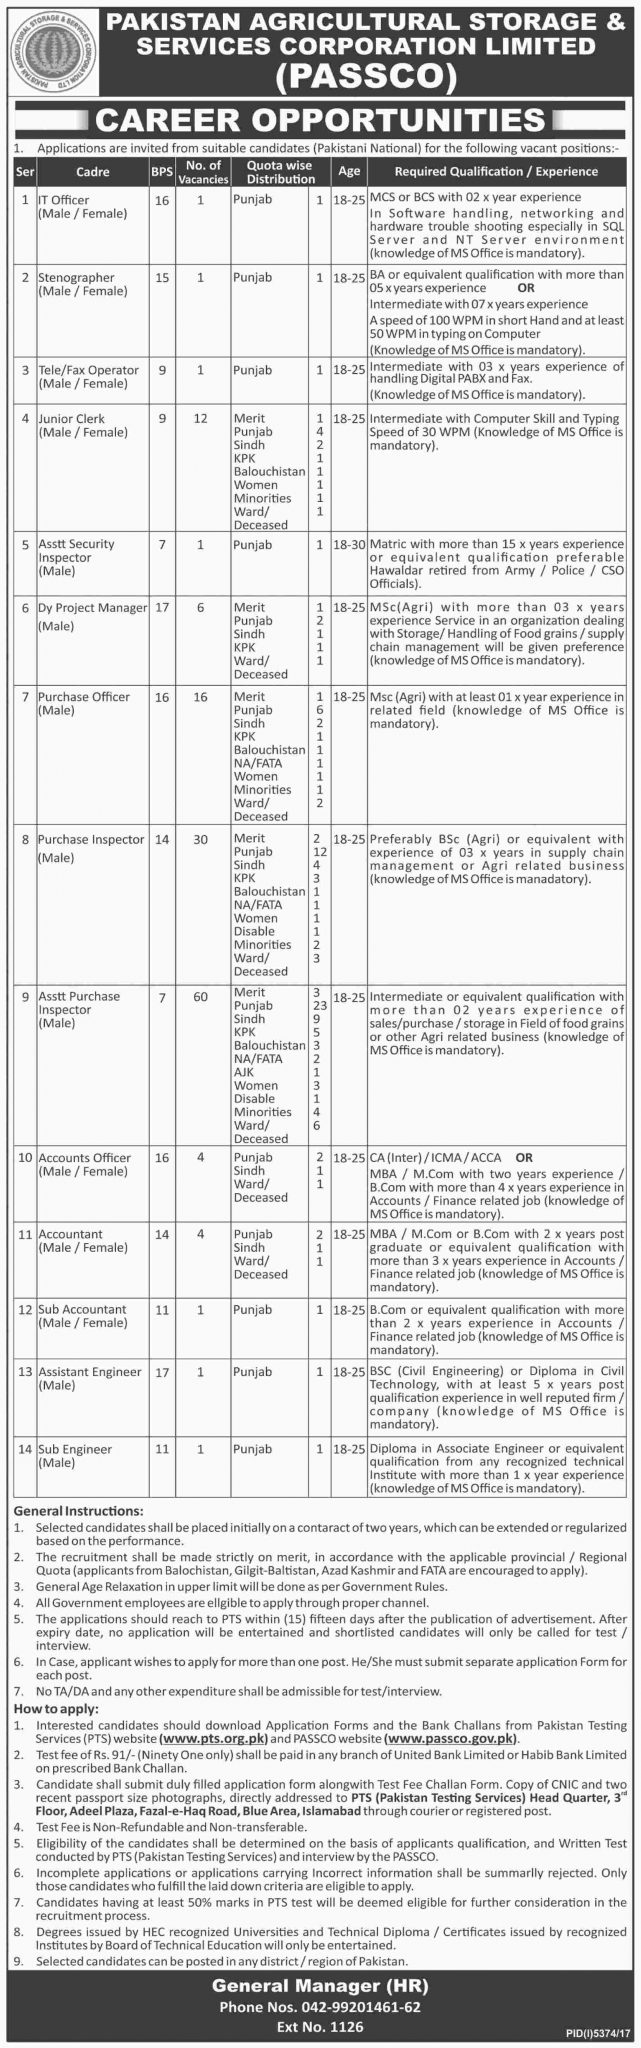 Pakistan Agricultural Storage Services Corporation Ltd Jobs PTS Screening Test 2021 Download Application Form